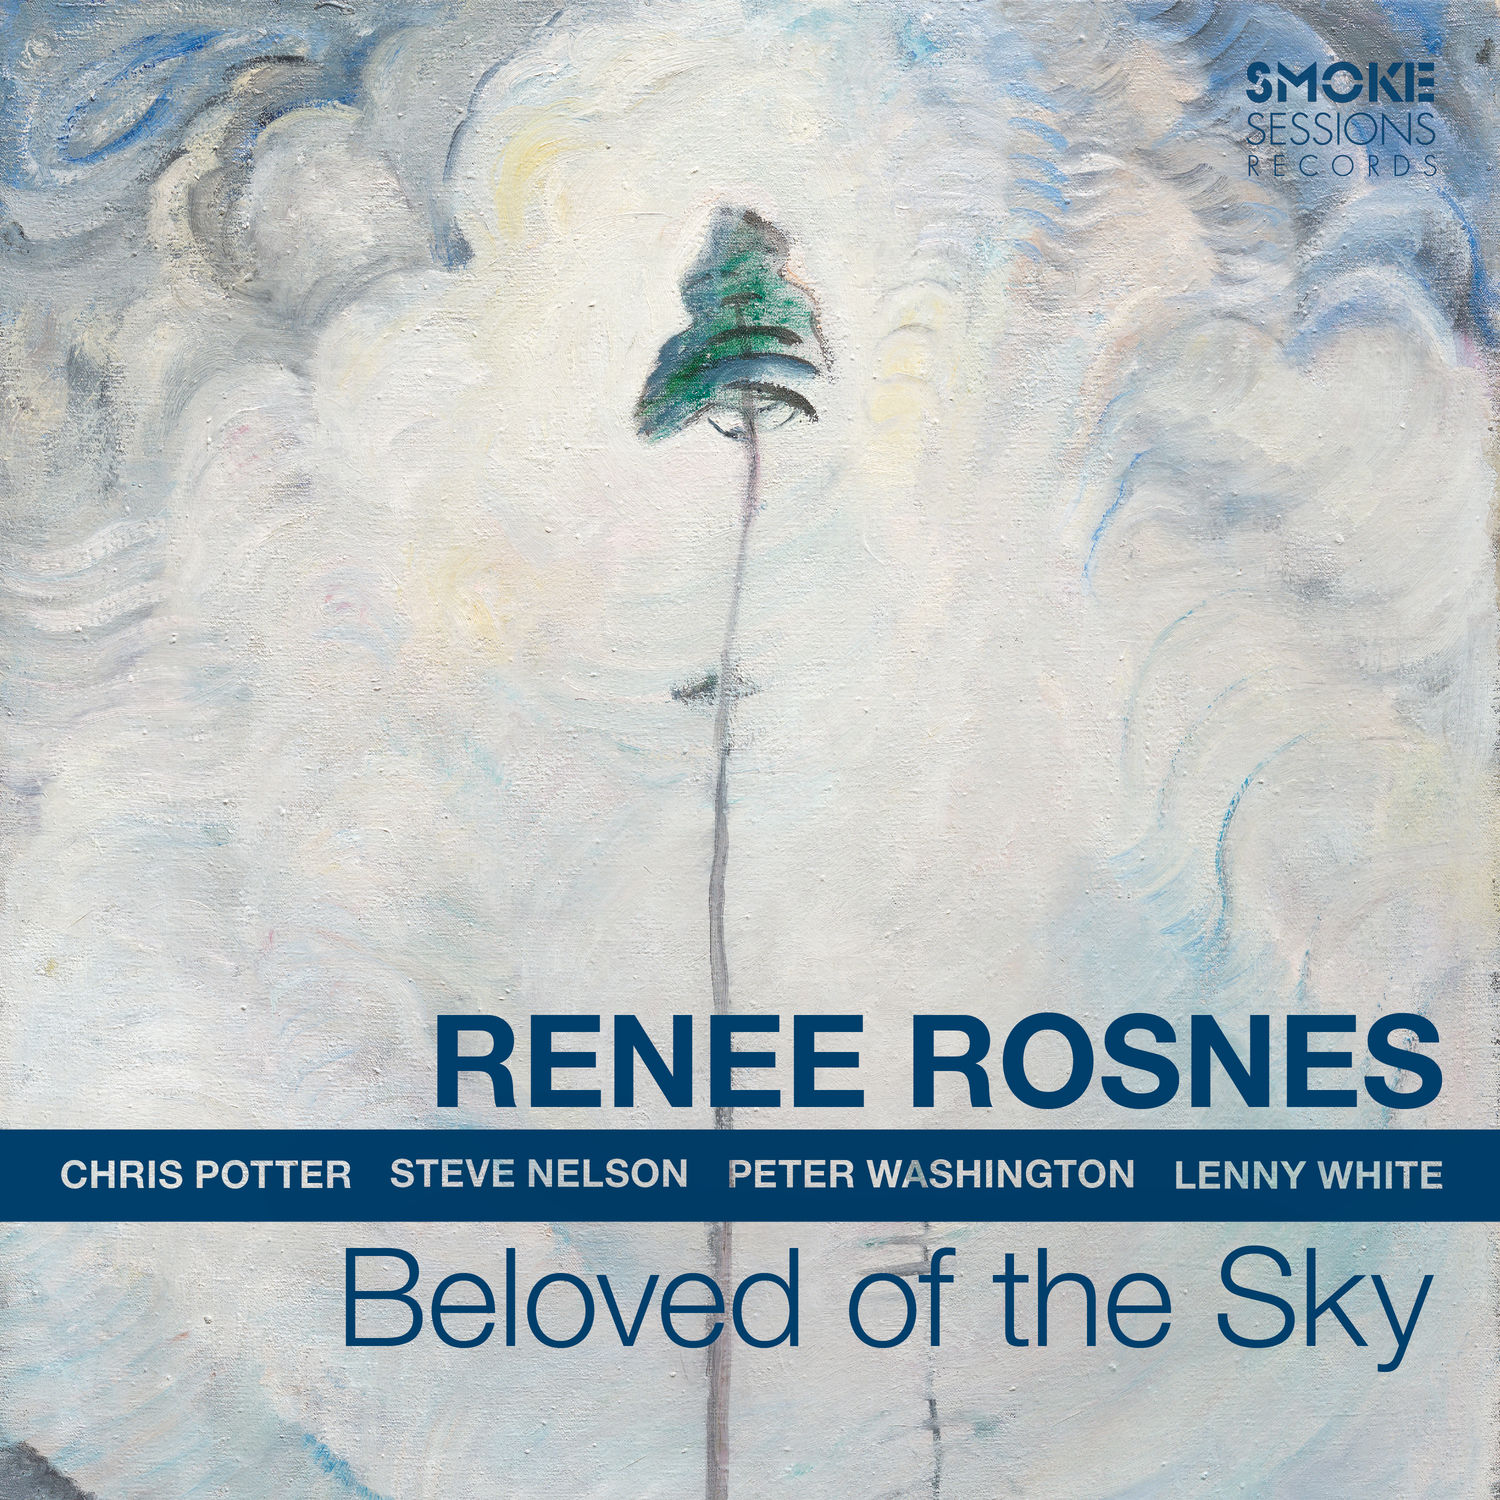 Renee Rosnes - Beloved Of The Sky